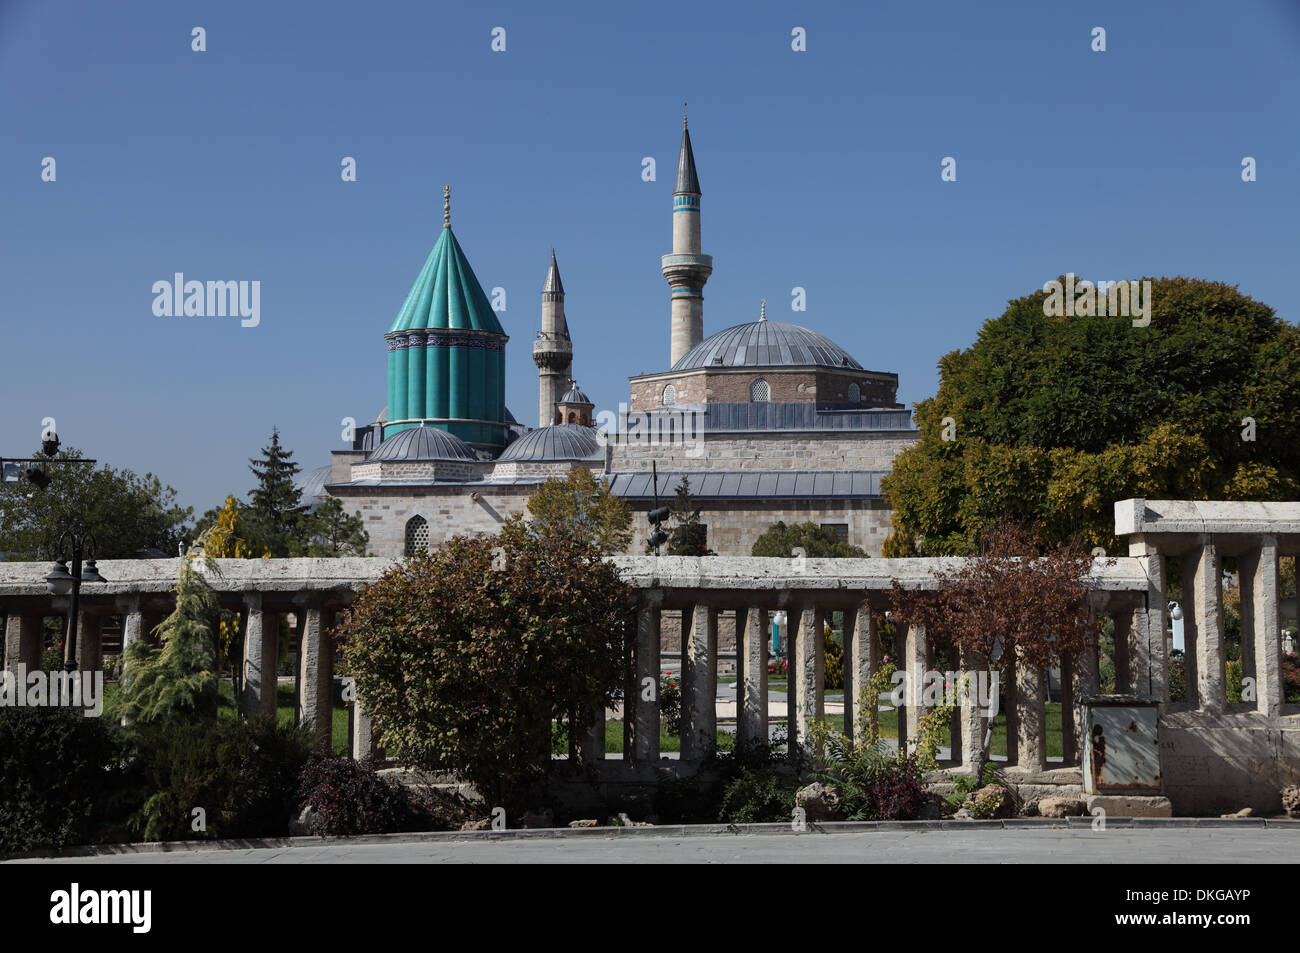 The Museum and Mausoleum of Mevlana, founder of the Whirling Dervishes sect, Konya, central Turkey - Stock Image